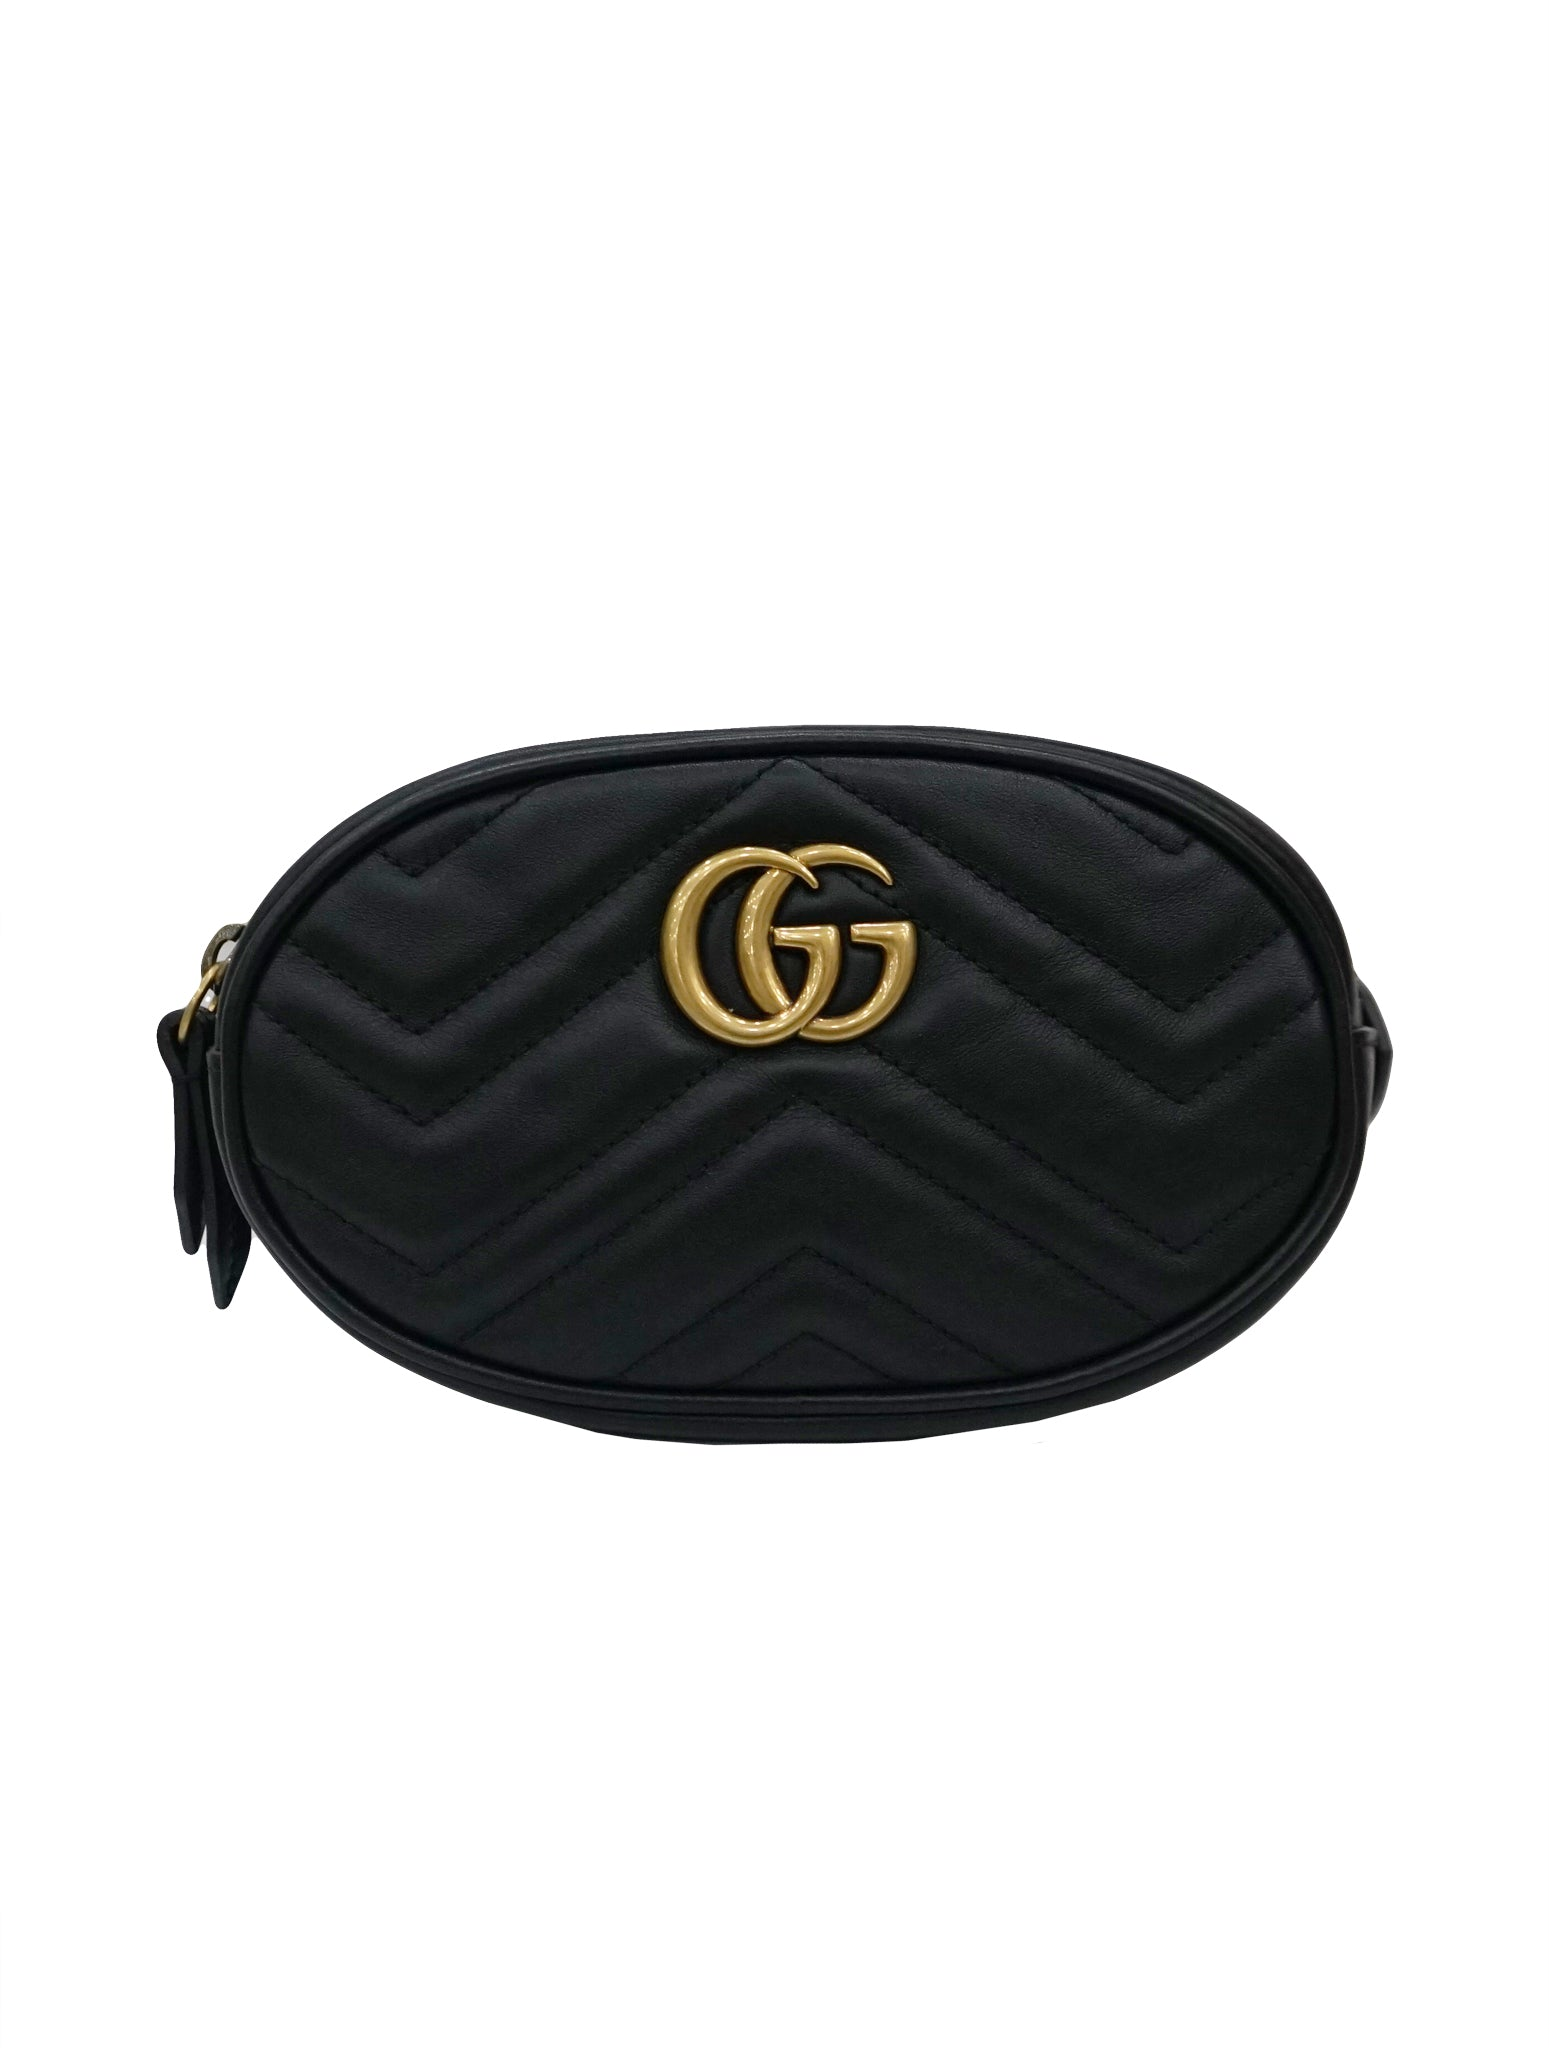 GG MARMONT QUILTED LEATHER BELT BAG